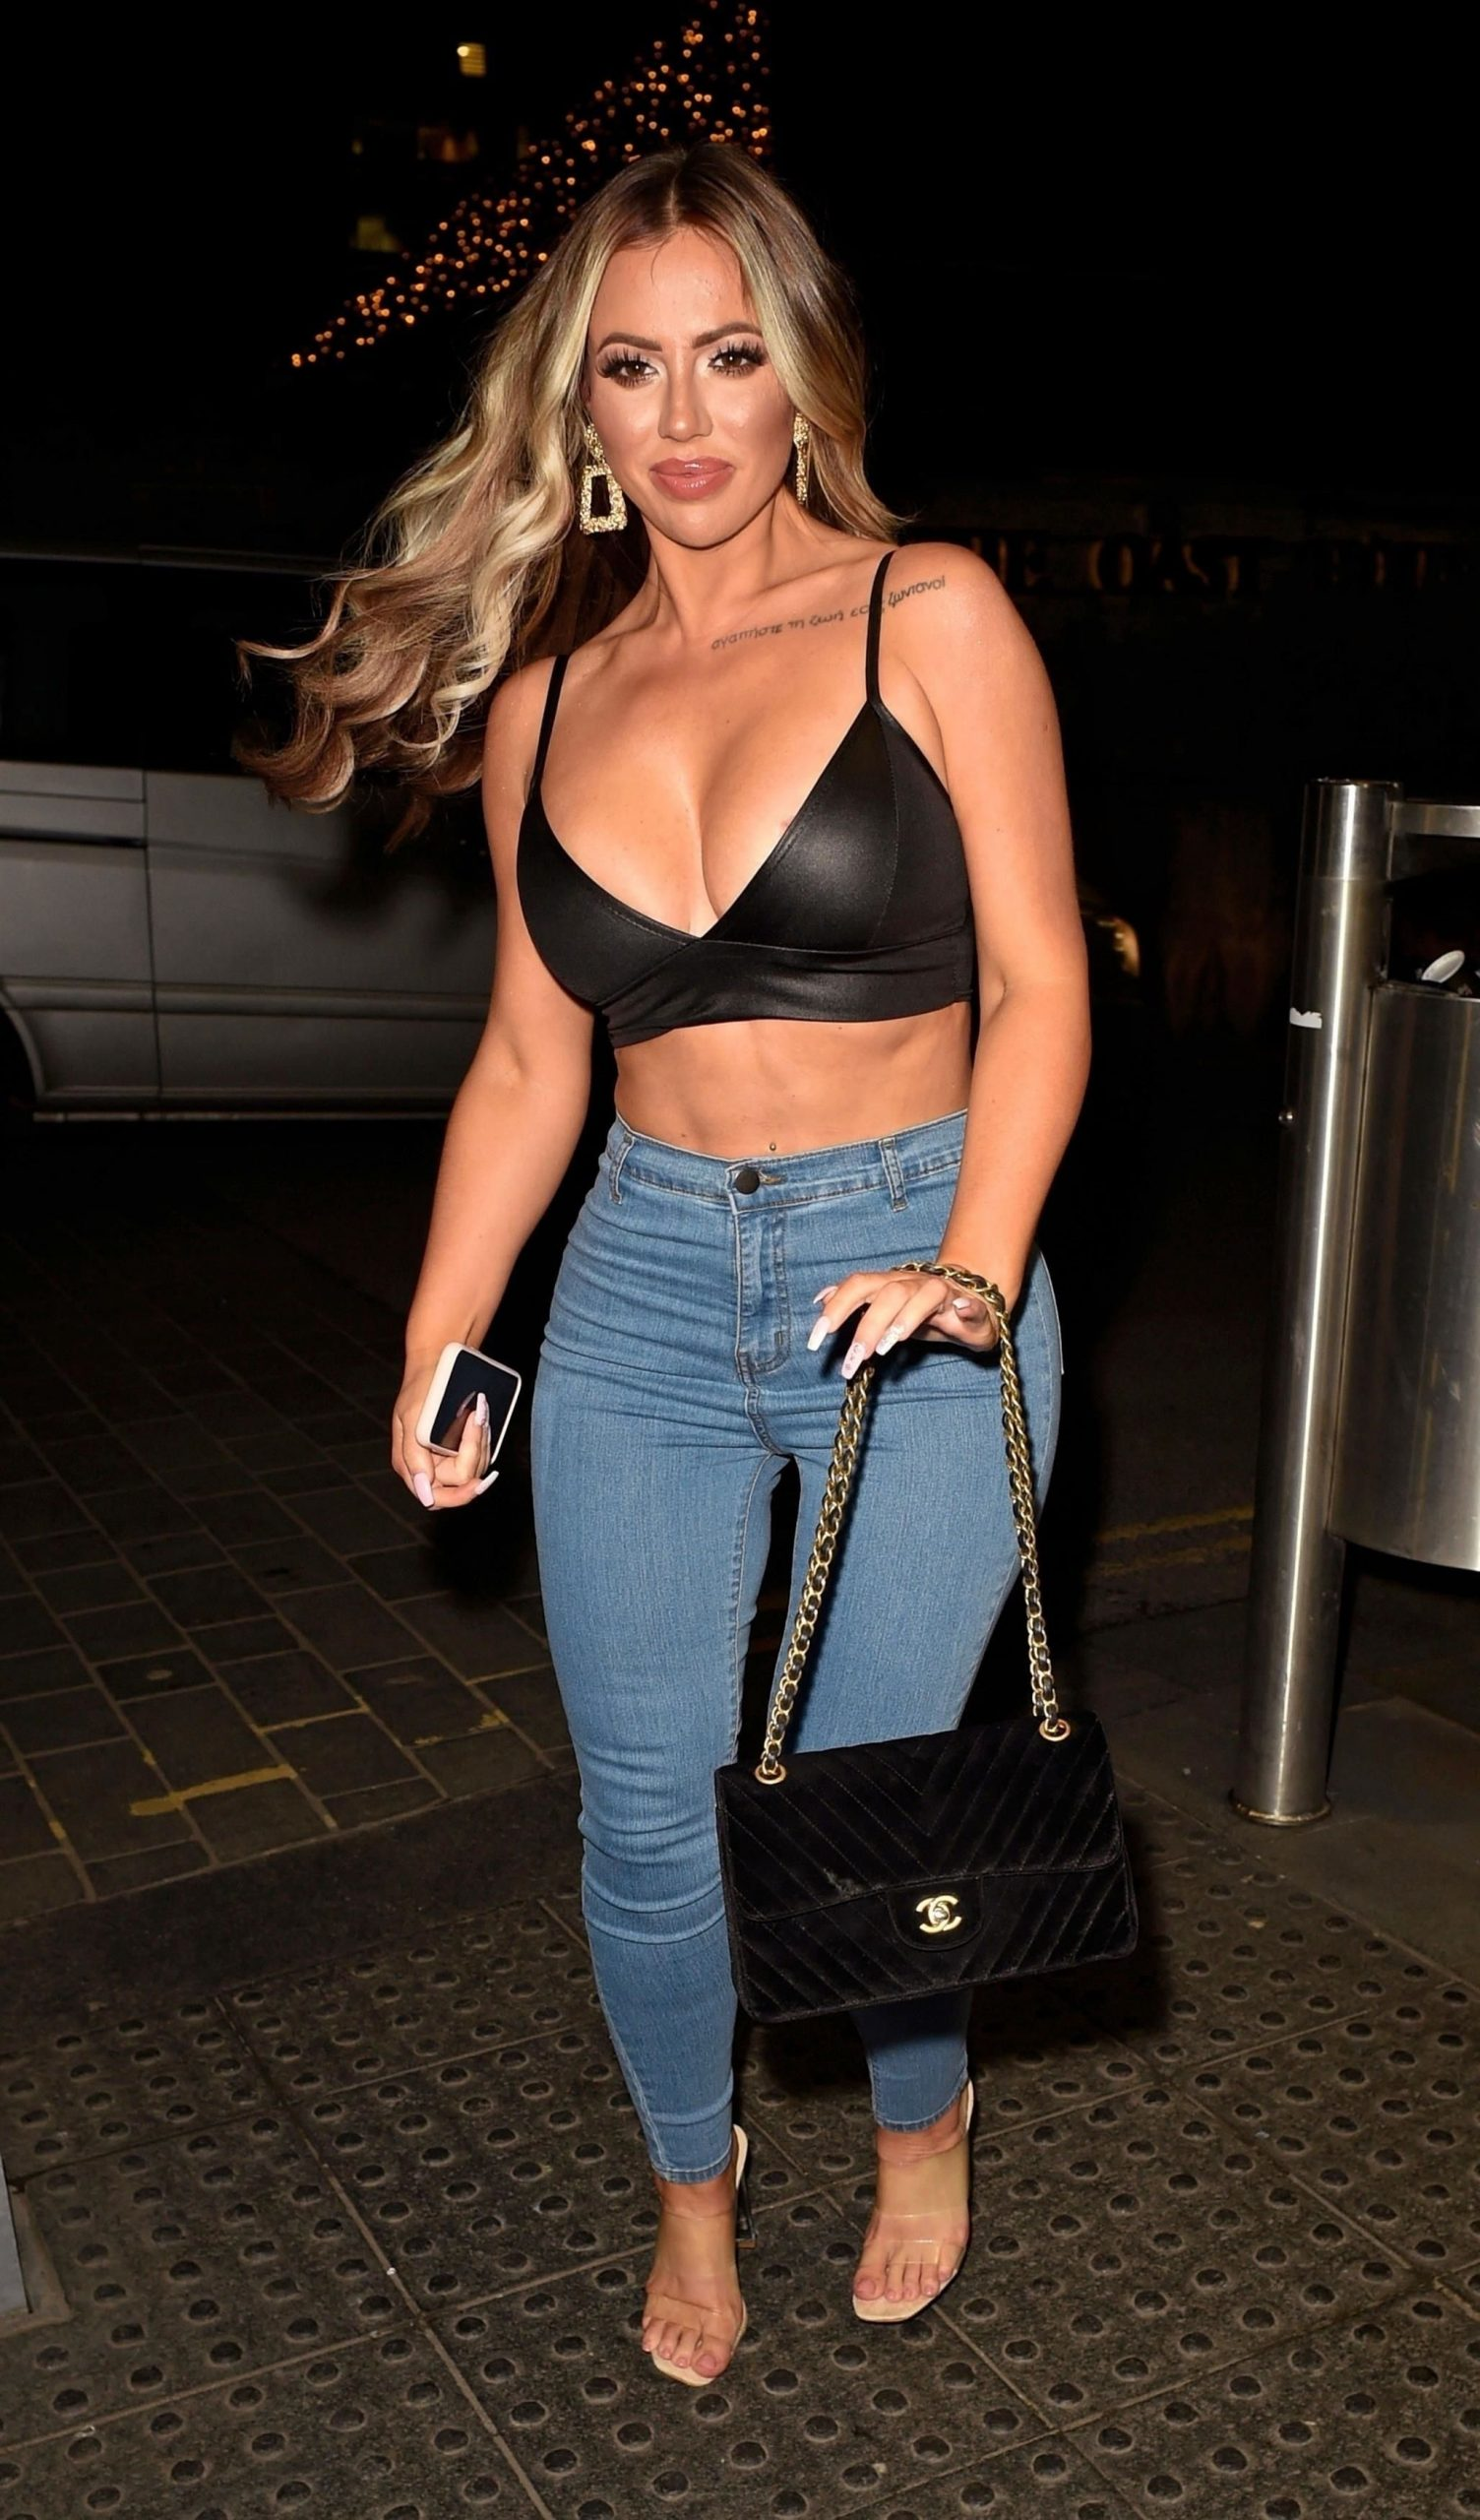 Holly Hagan Shows Off Her Sexy Figure On A Girls Night Out 0014